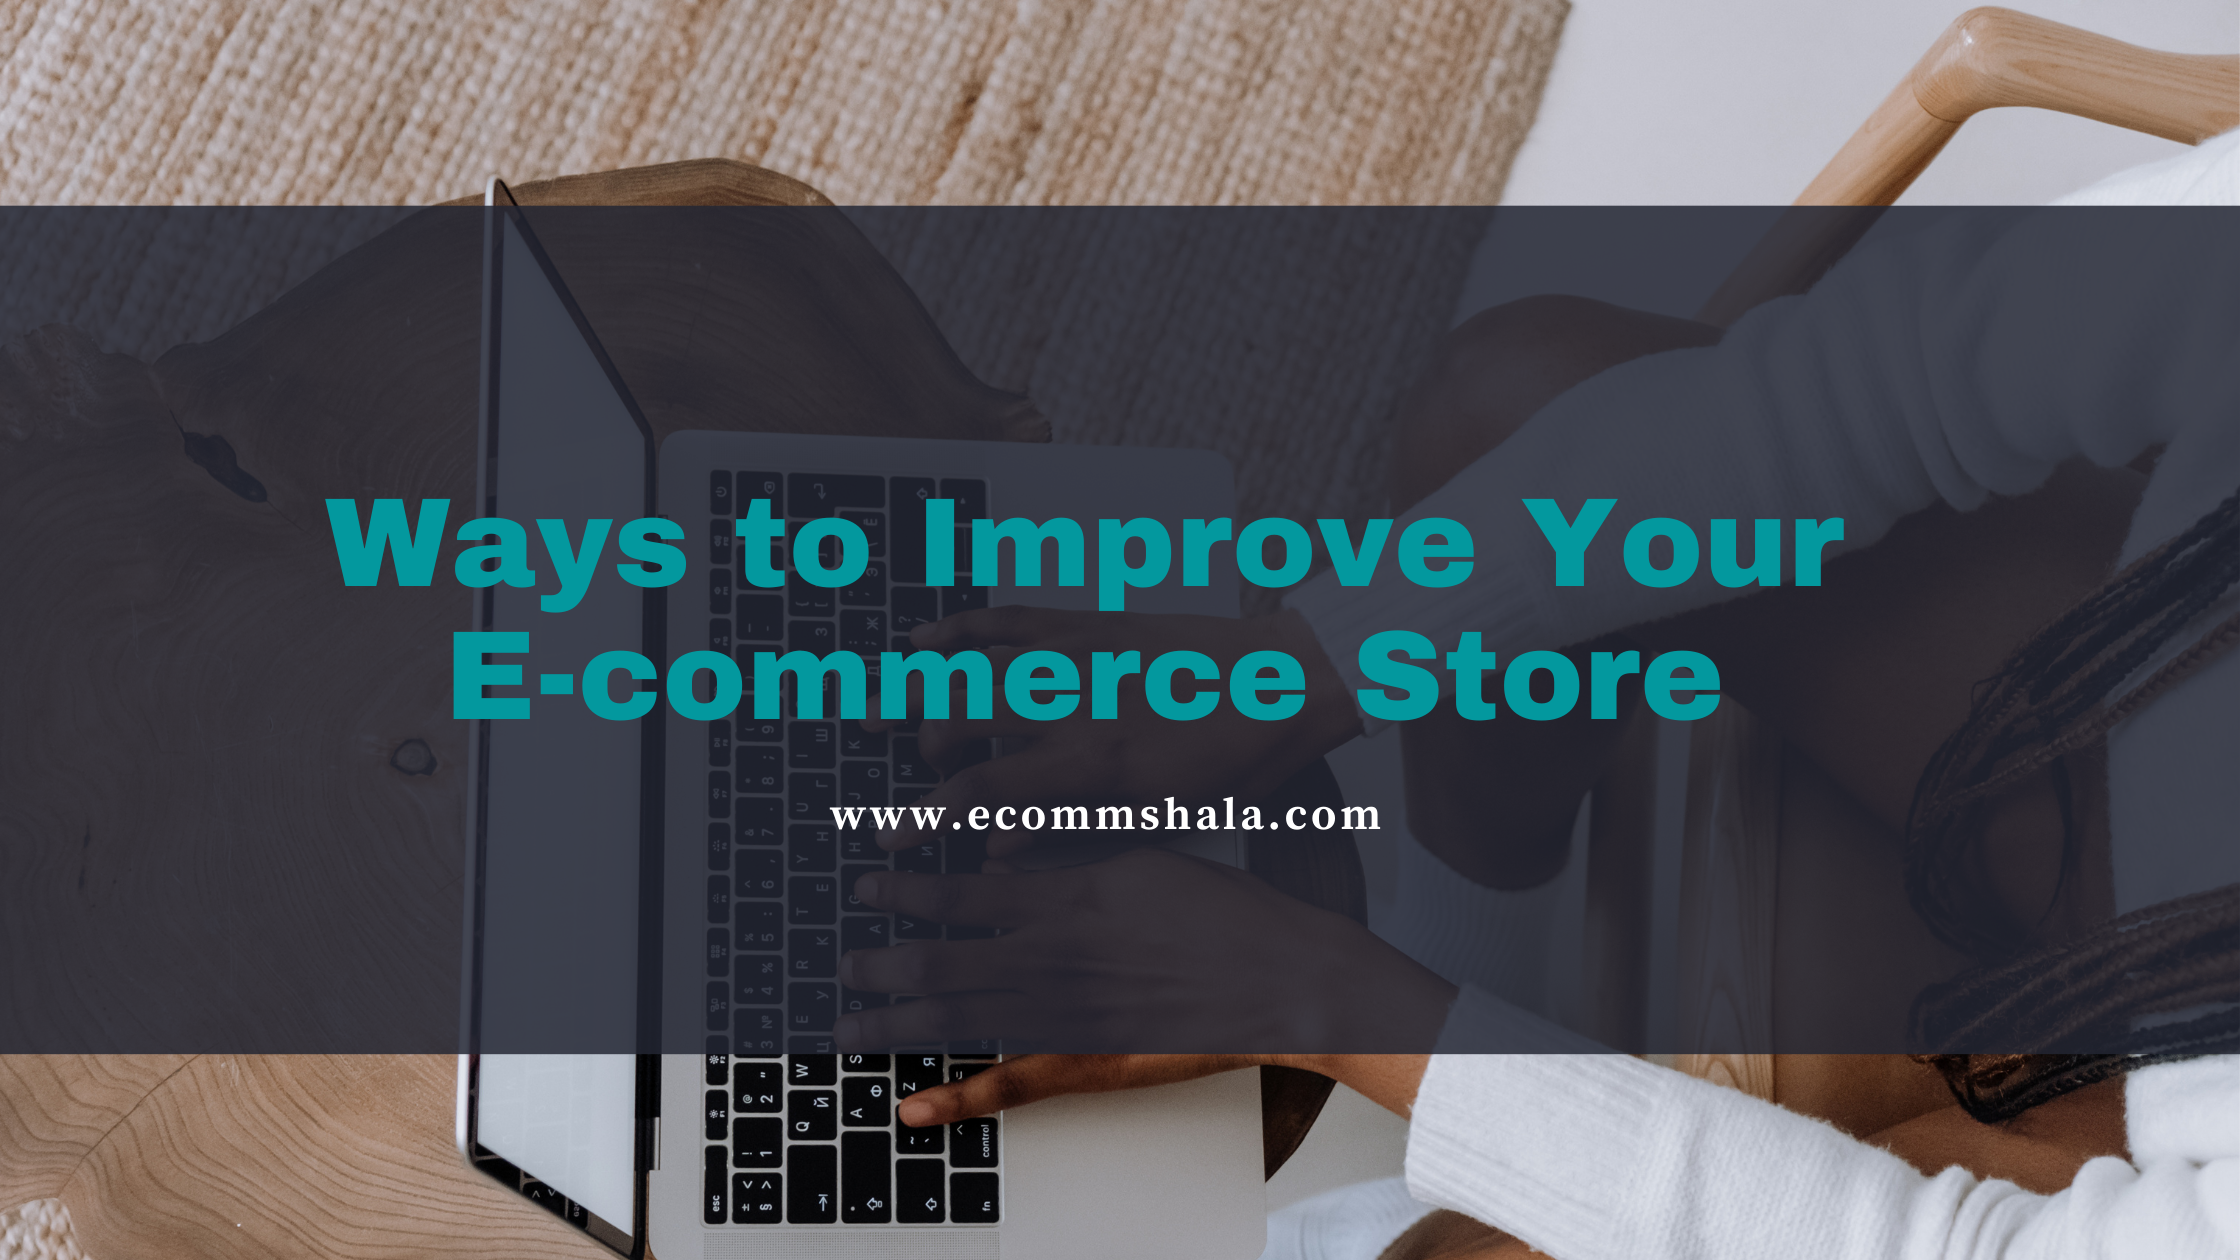 Ways to Improve Your E-commerce Store